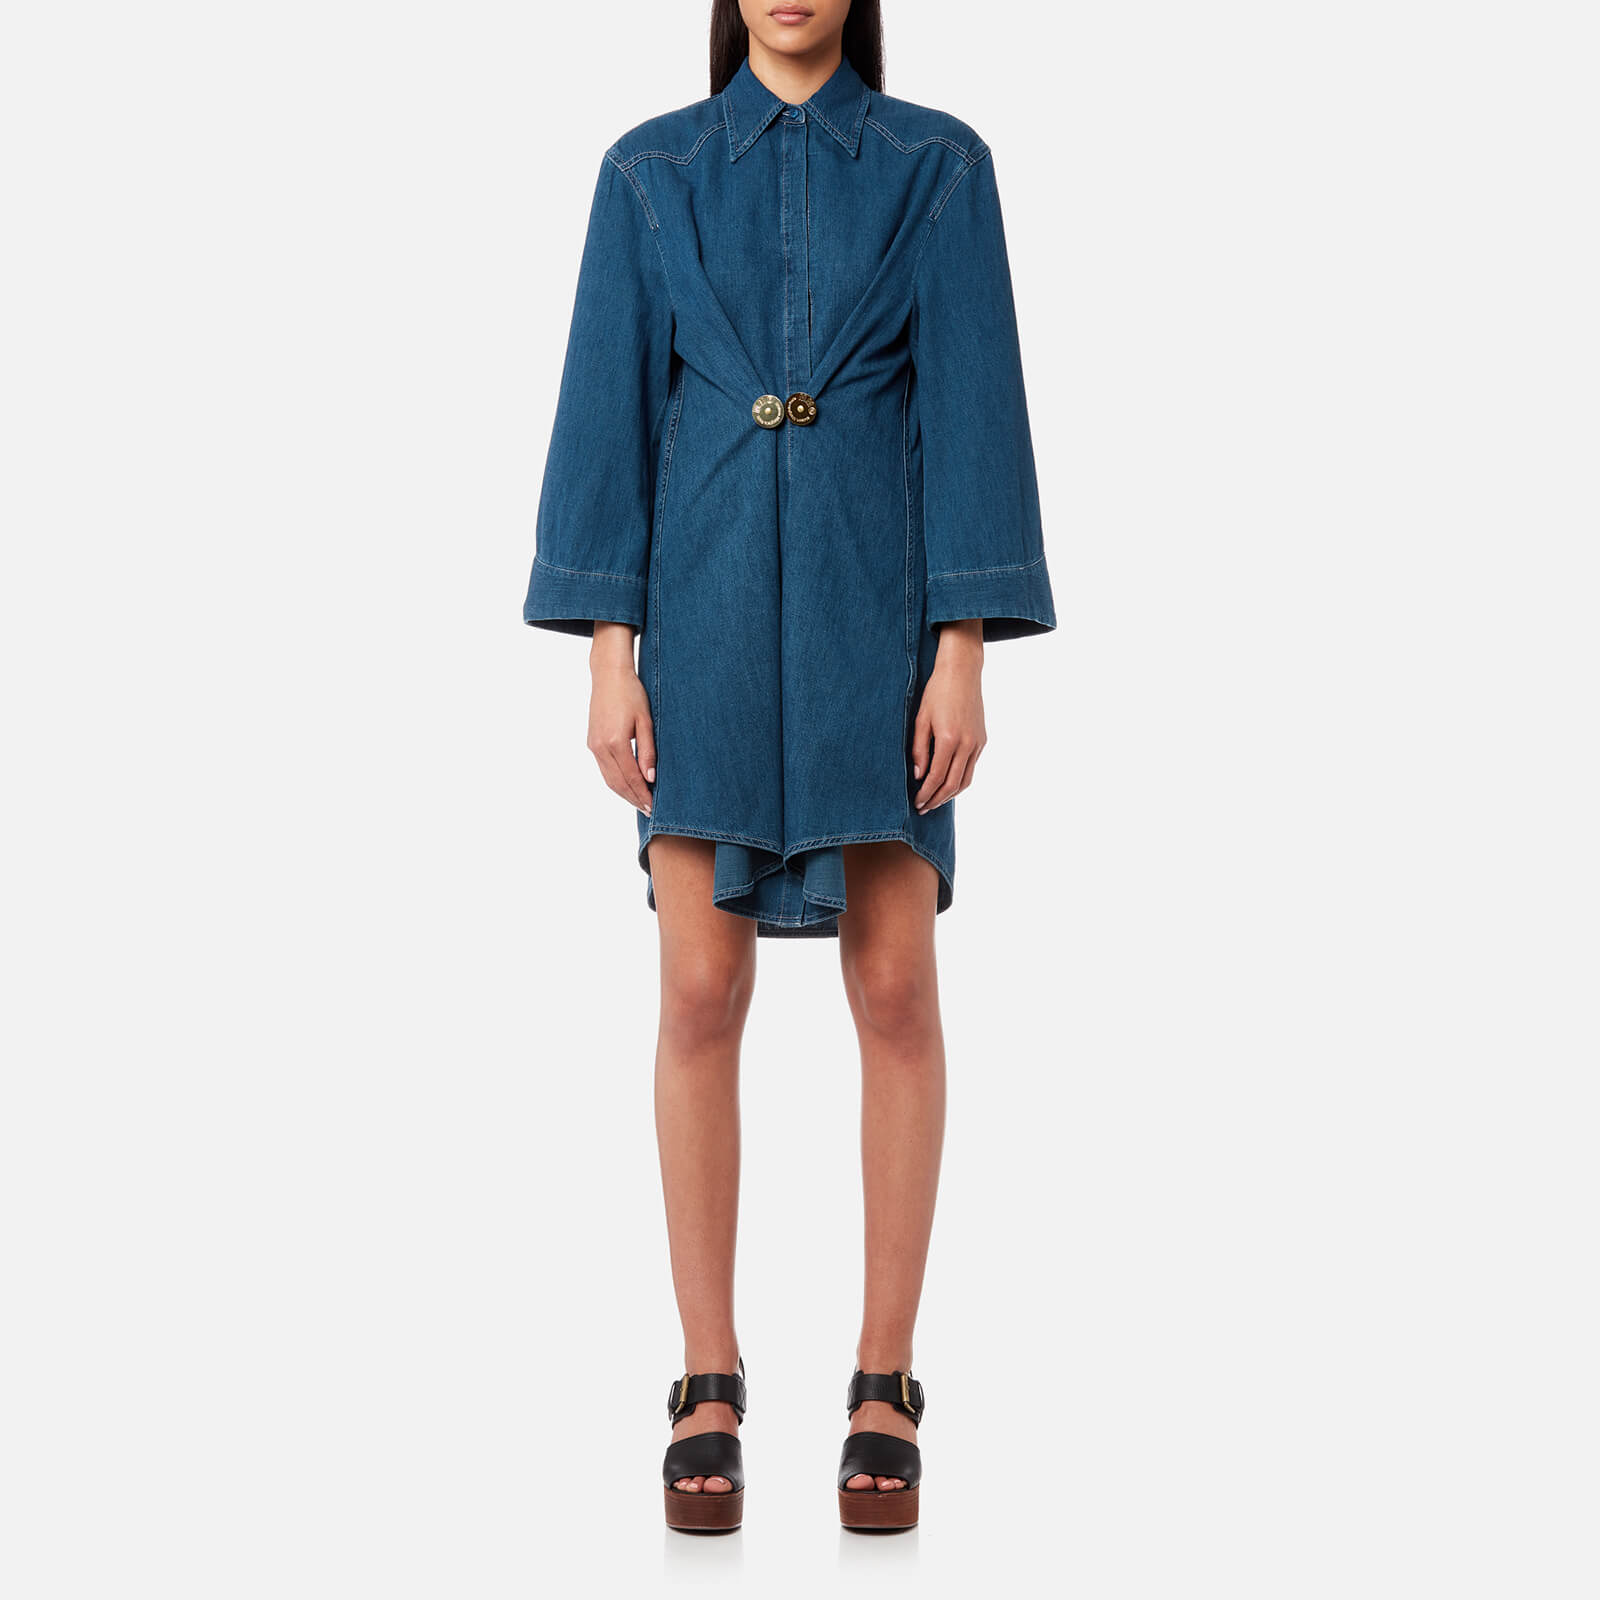 7a9d55bff7e MM6 Maison Margiela Women s Vintage Denim Shirt Dress - Medium Blue - Free  UK Delivery over £50